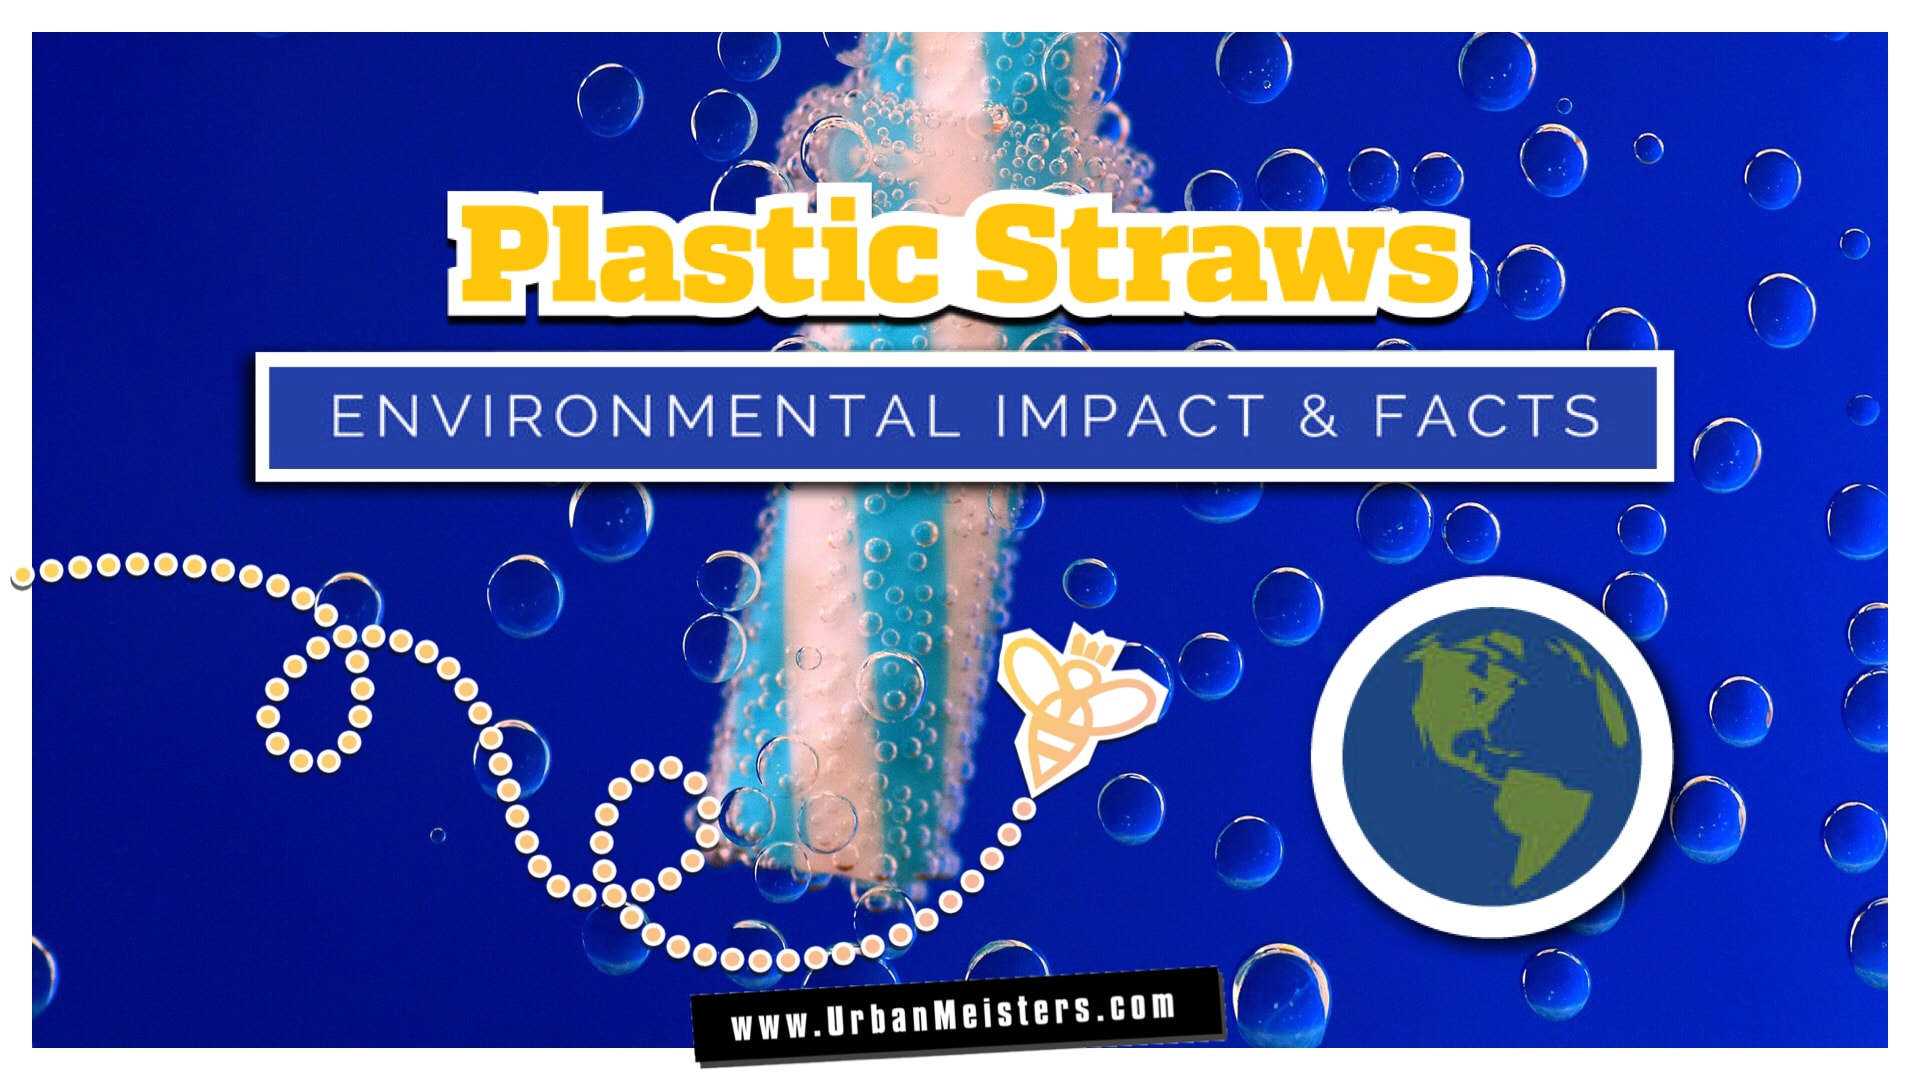 [INFOGRAPHIC] Why you need to call it quits on plastic straws & how!